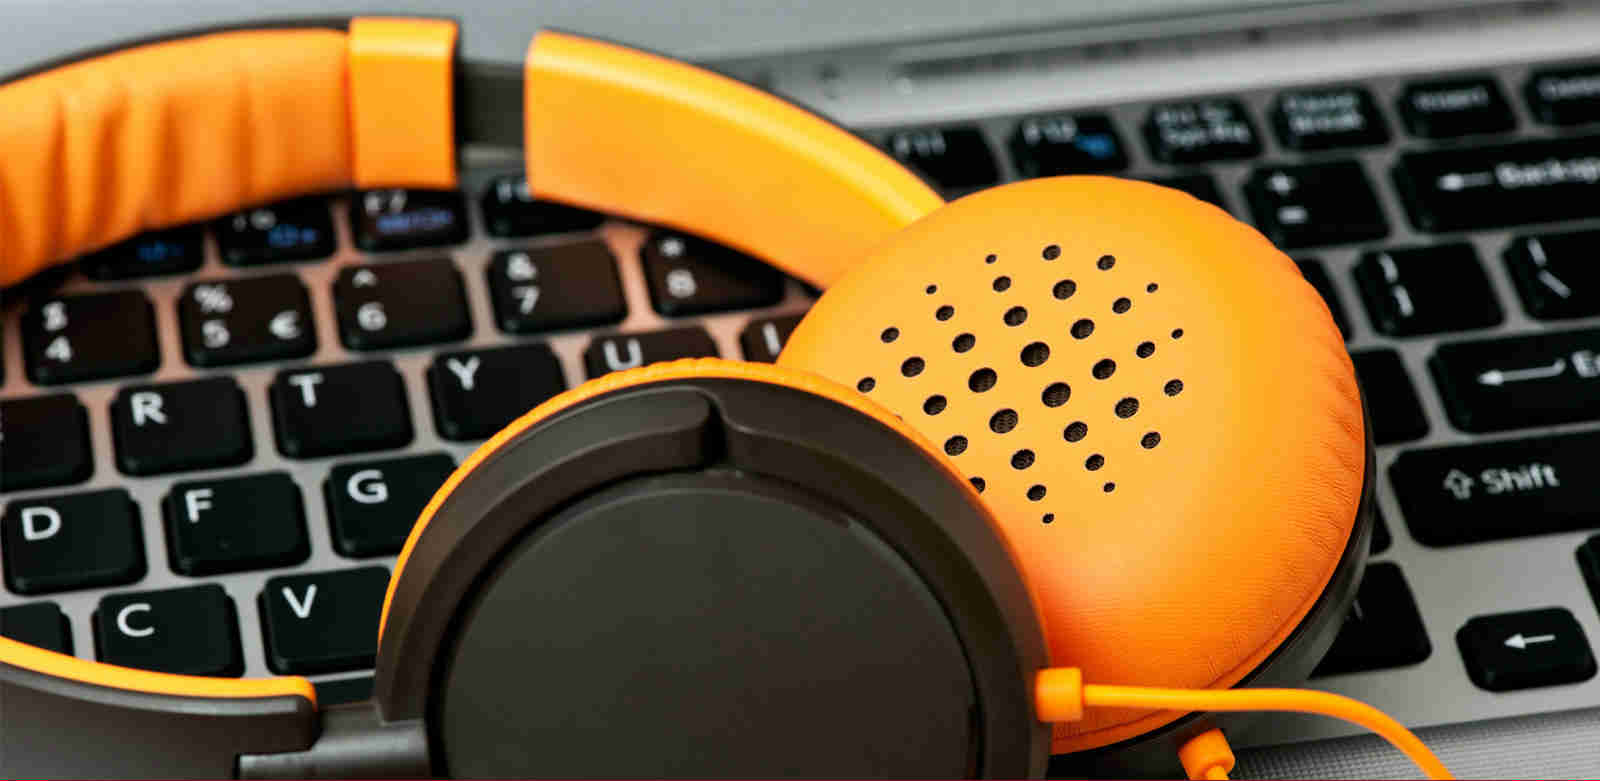 A pair of orange headphones resting on a laptop keyboard